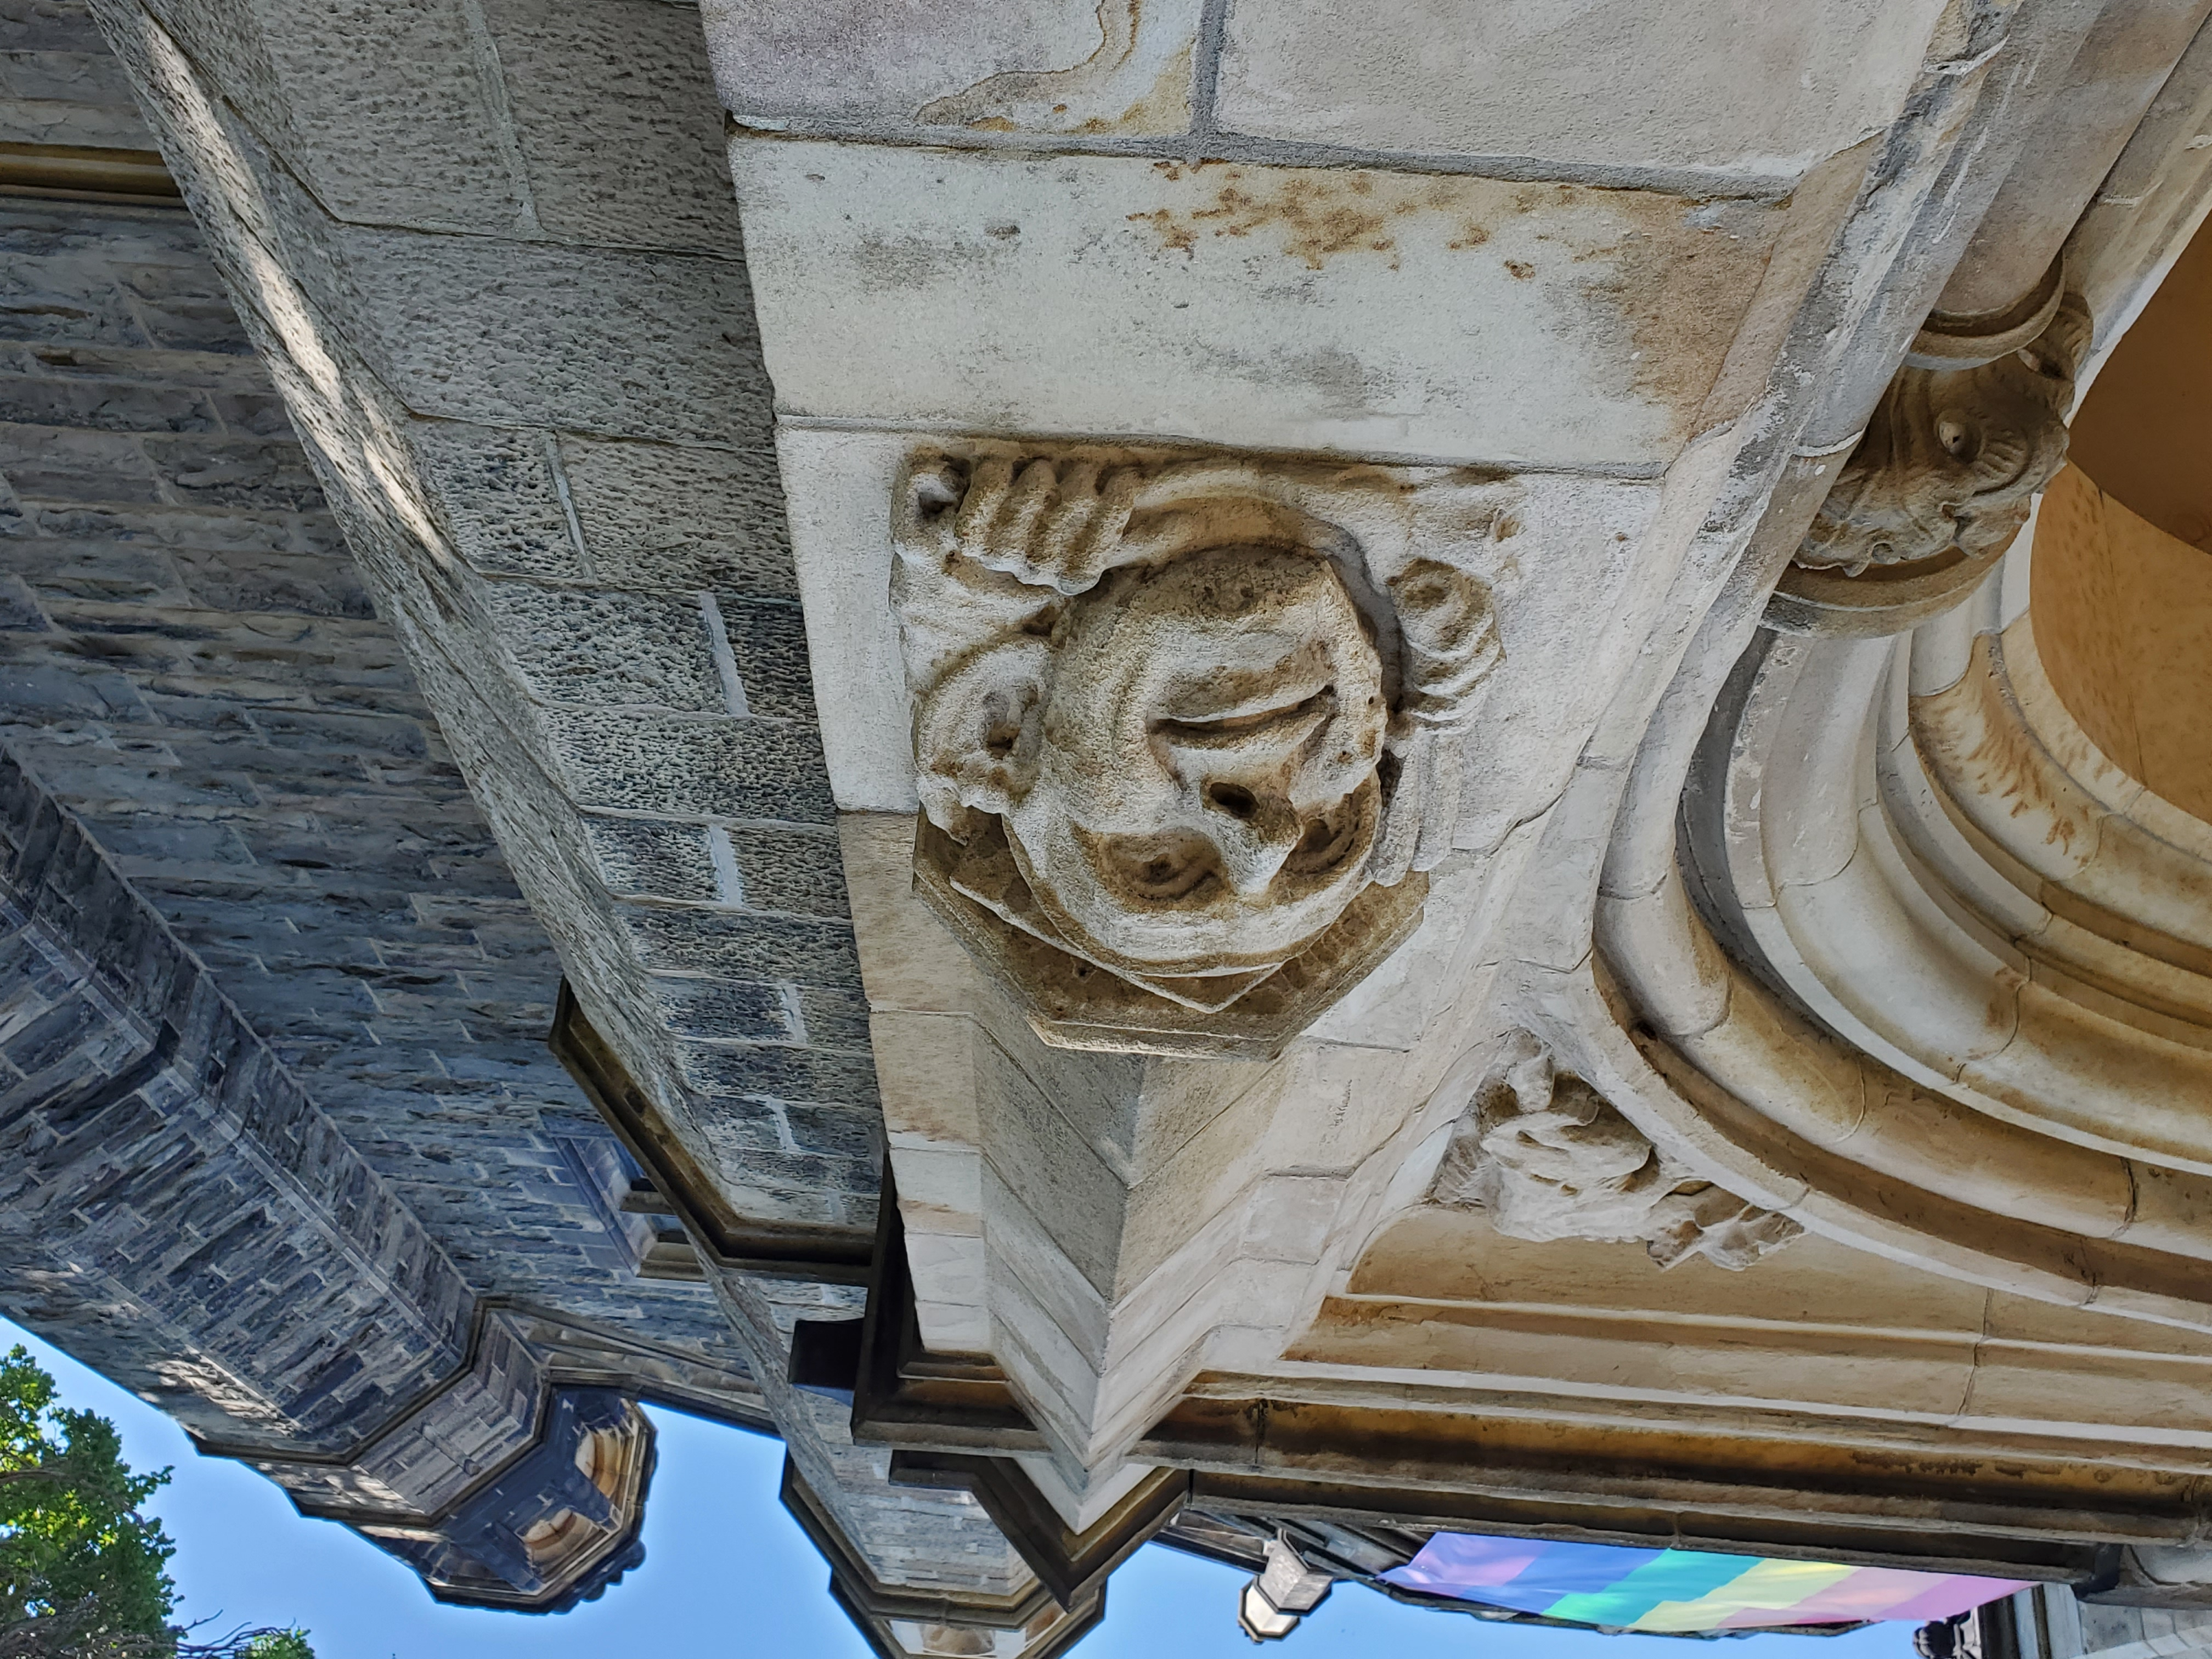 Carving on the entry to Trinity College, University of Toronto